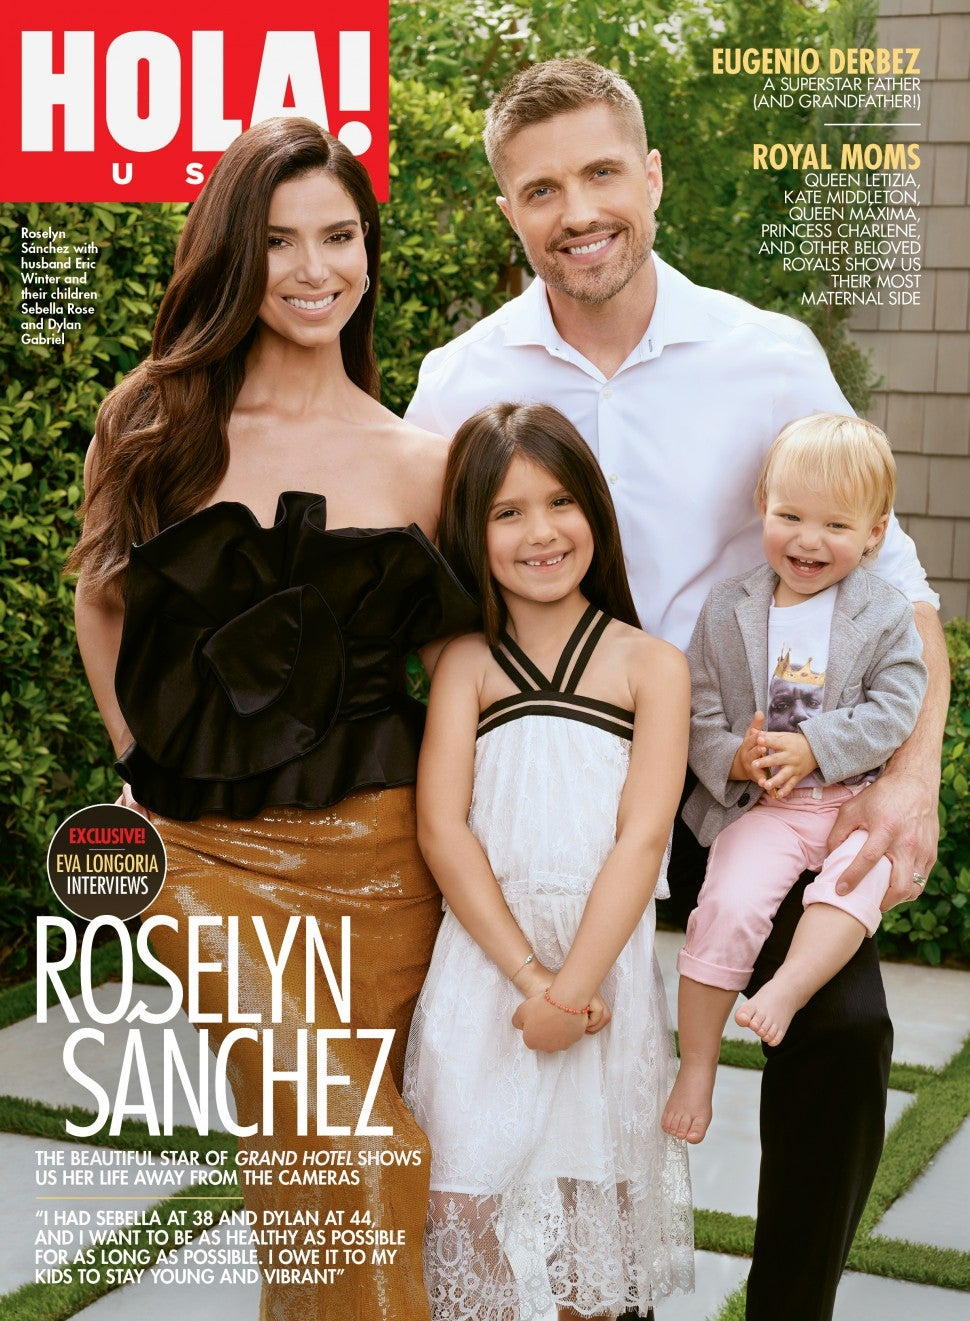 Roselyn Sanchez Hola USA Cover